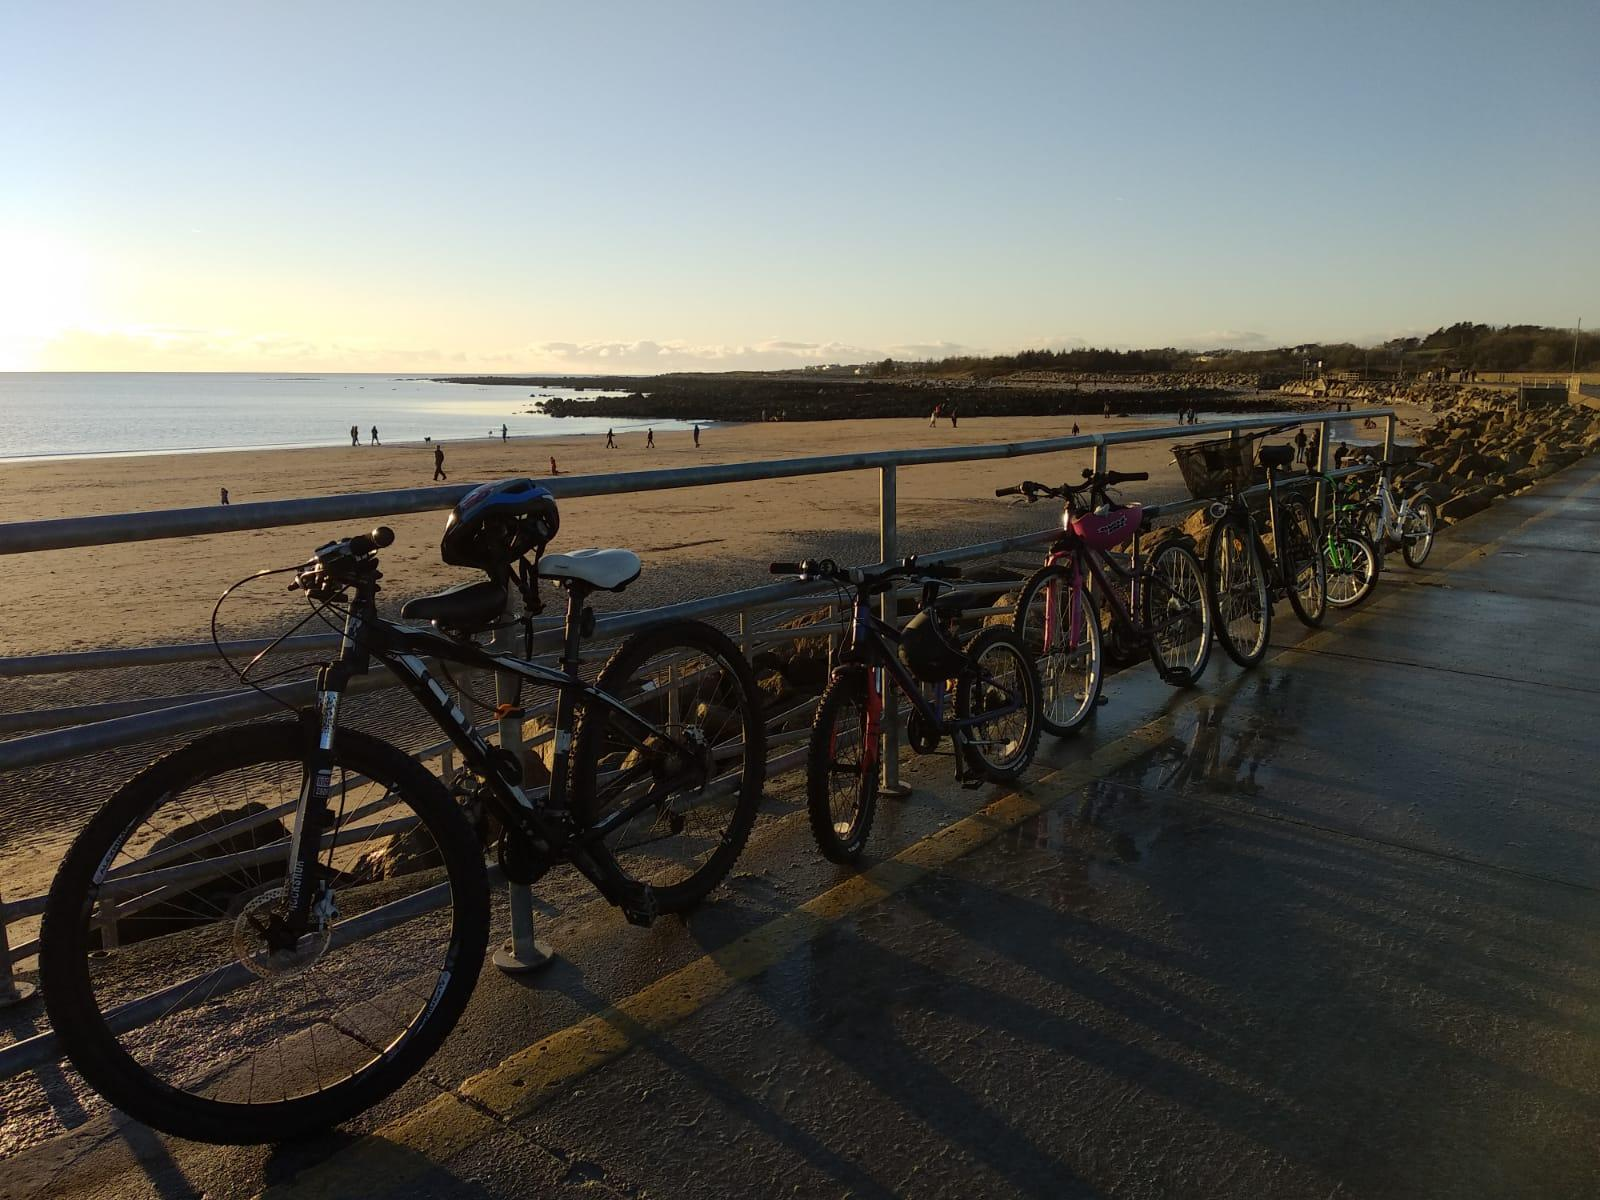 A picture containing sky, outdoor, bicycle, water  Description automatically generated